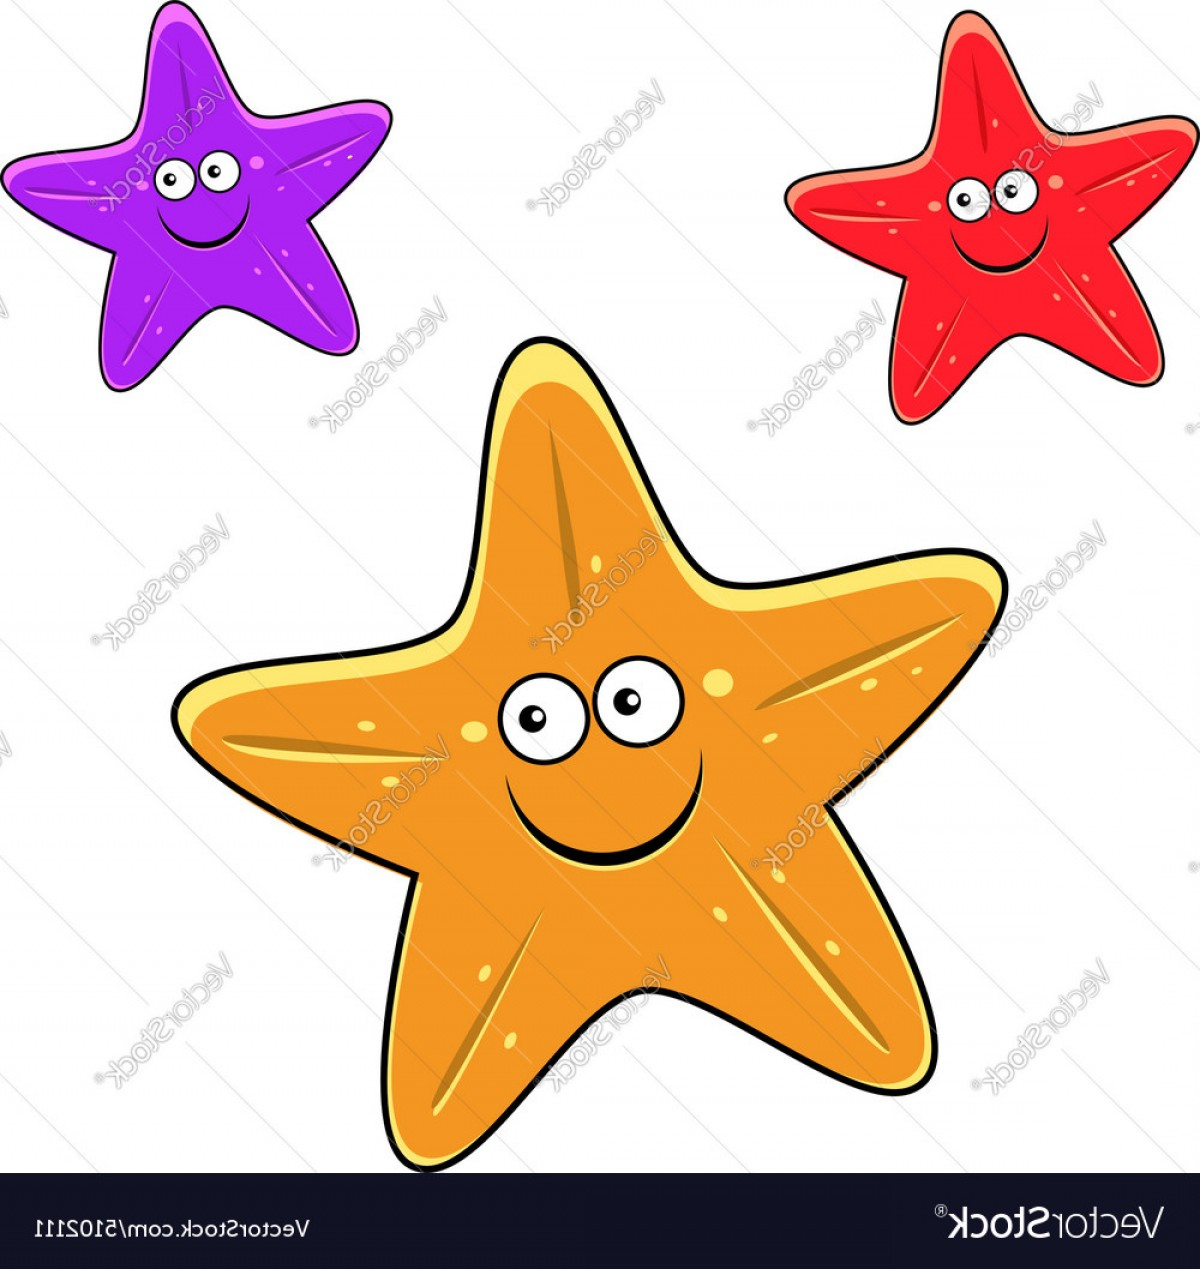 Starfish Cartoon Images Vector: Cartoon Yellow Red And Violet Starfish Characters Vector